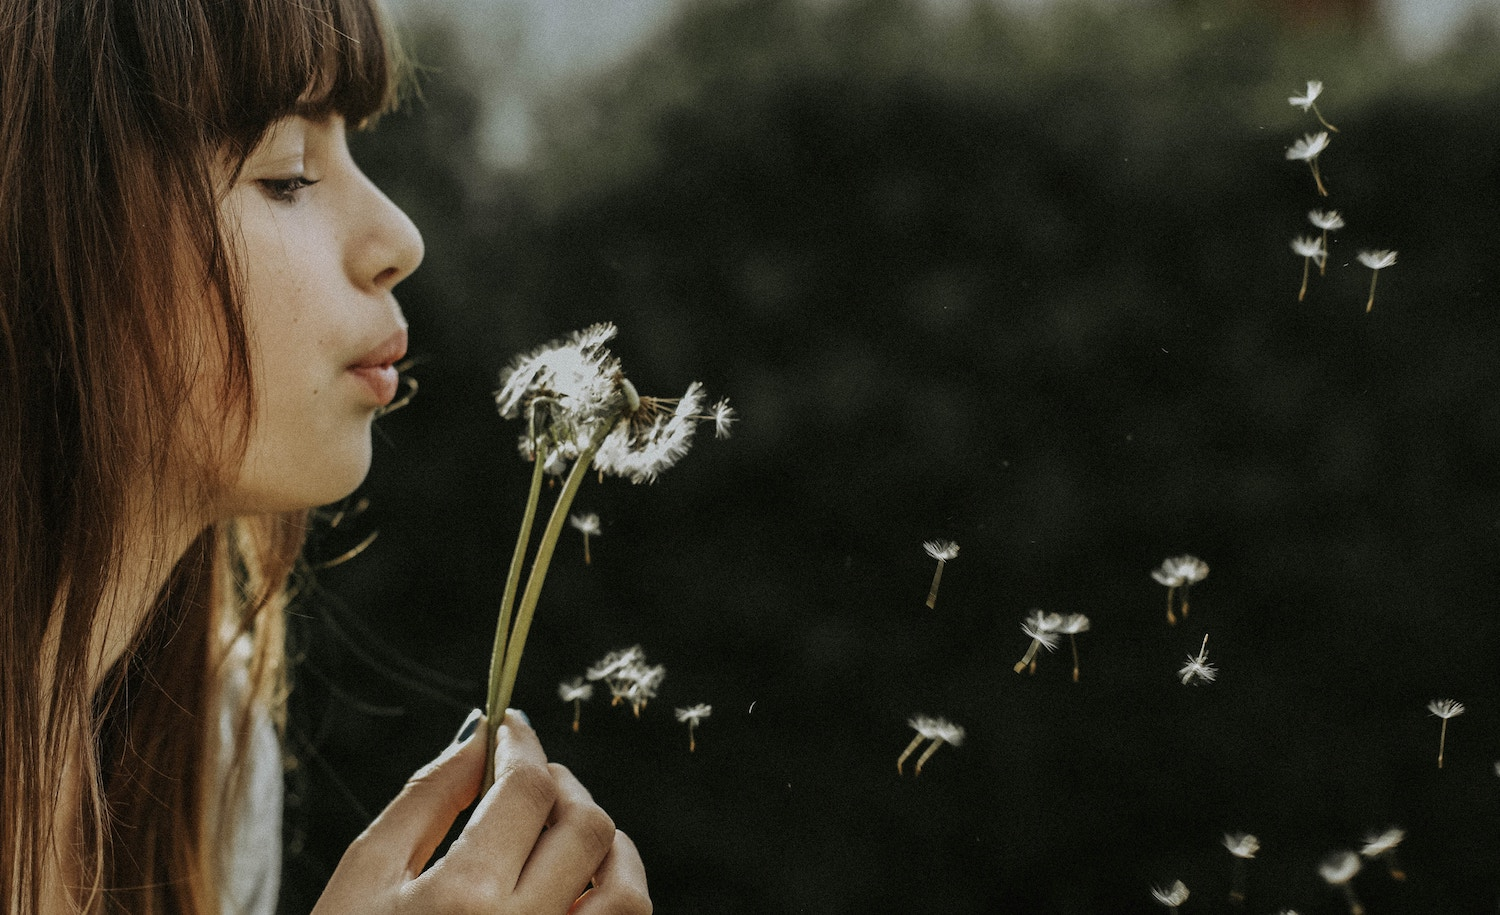 19 Signs That You're an INFP, the Most Idealistic Personality Type